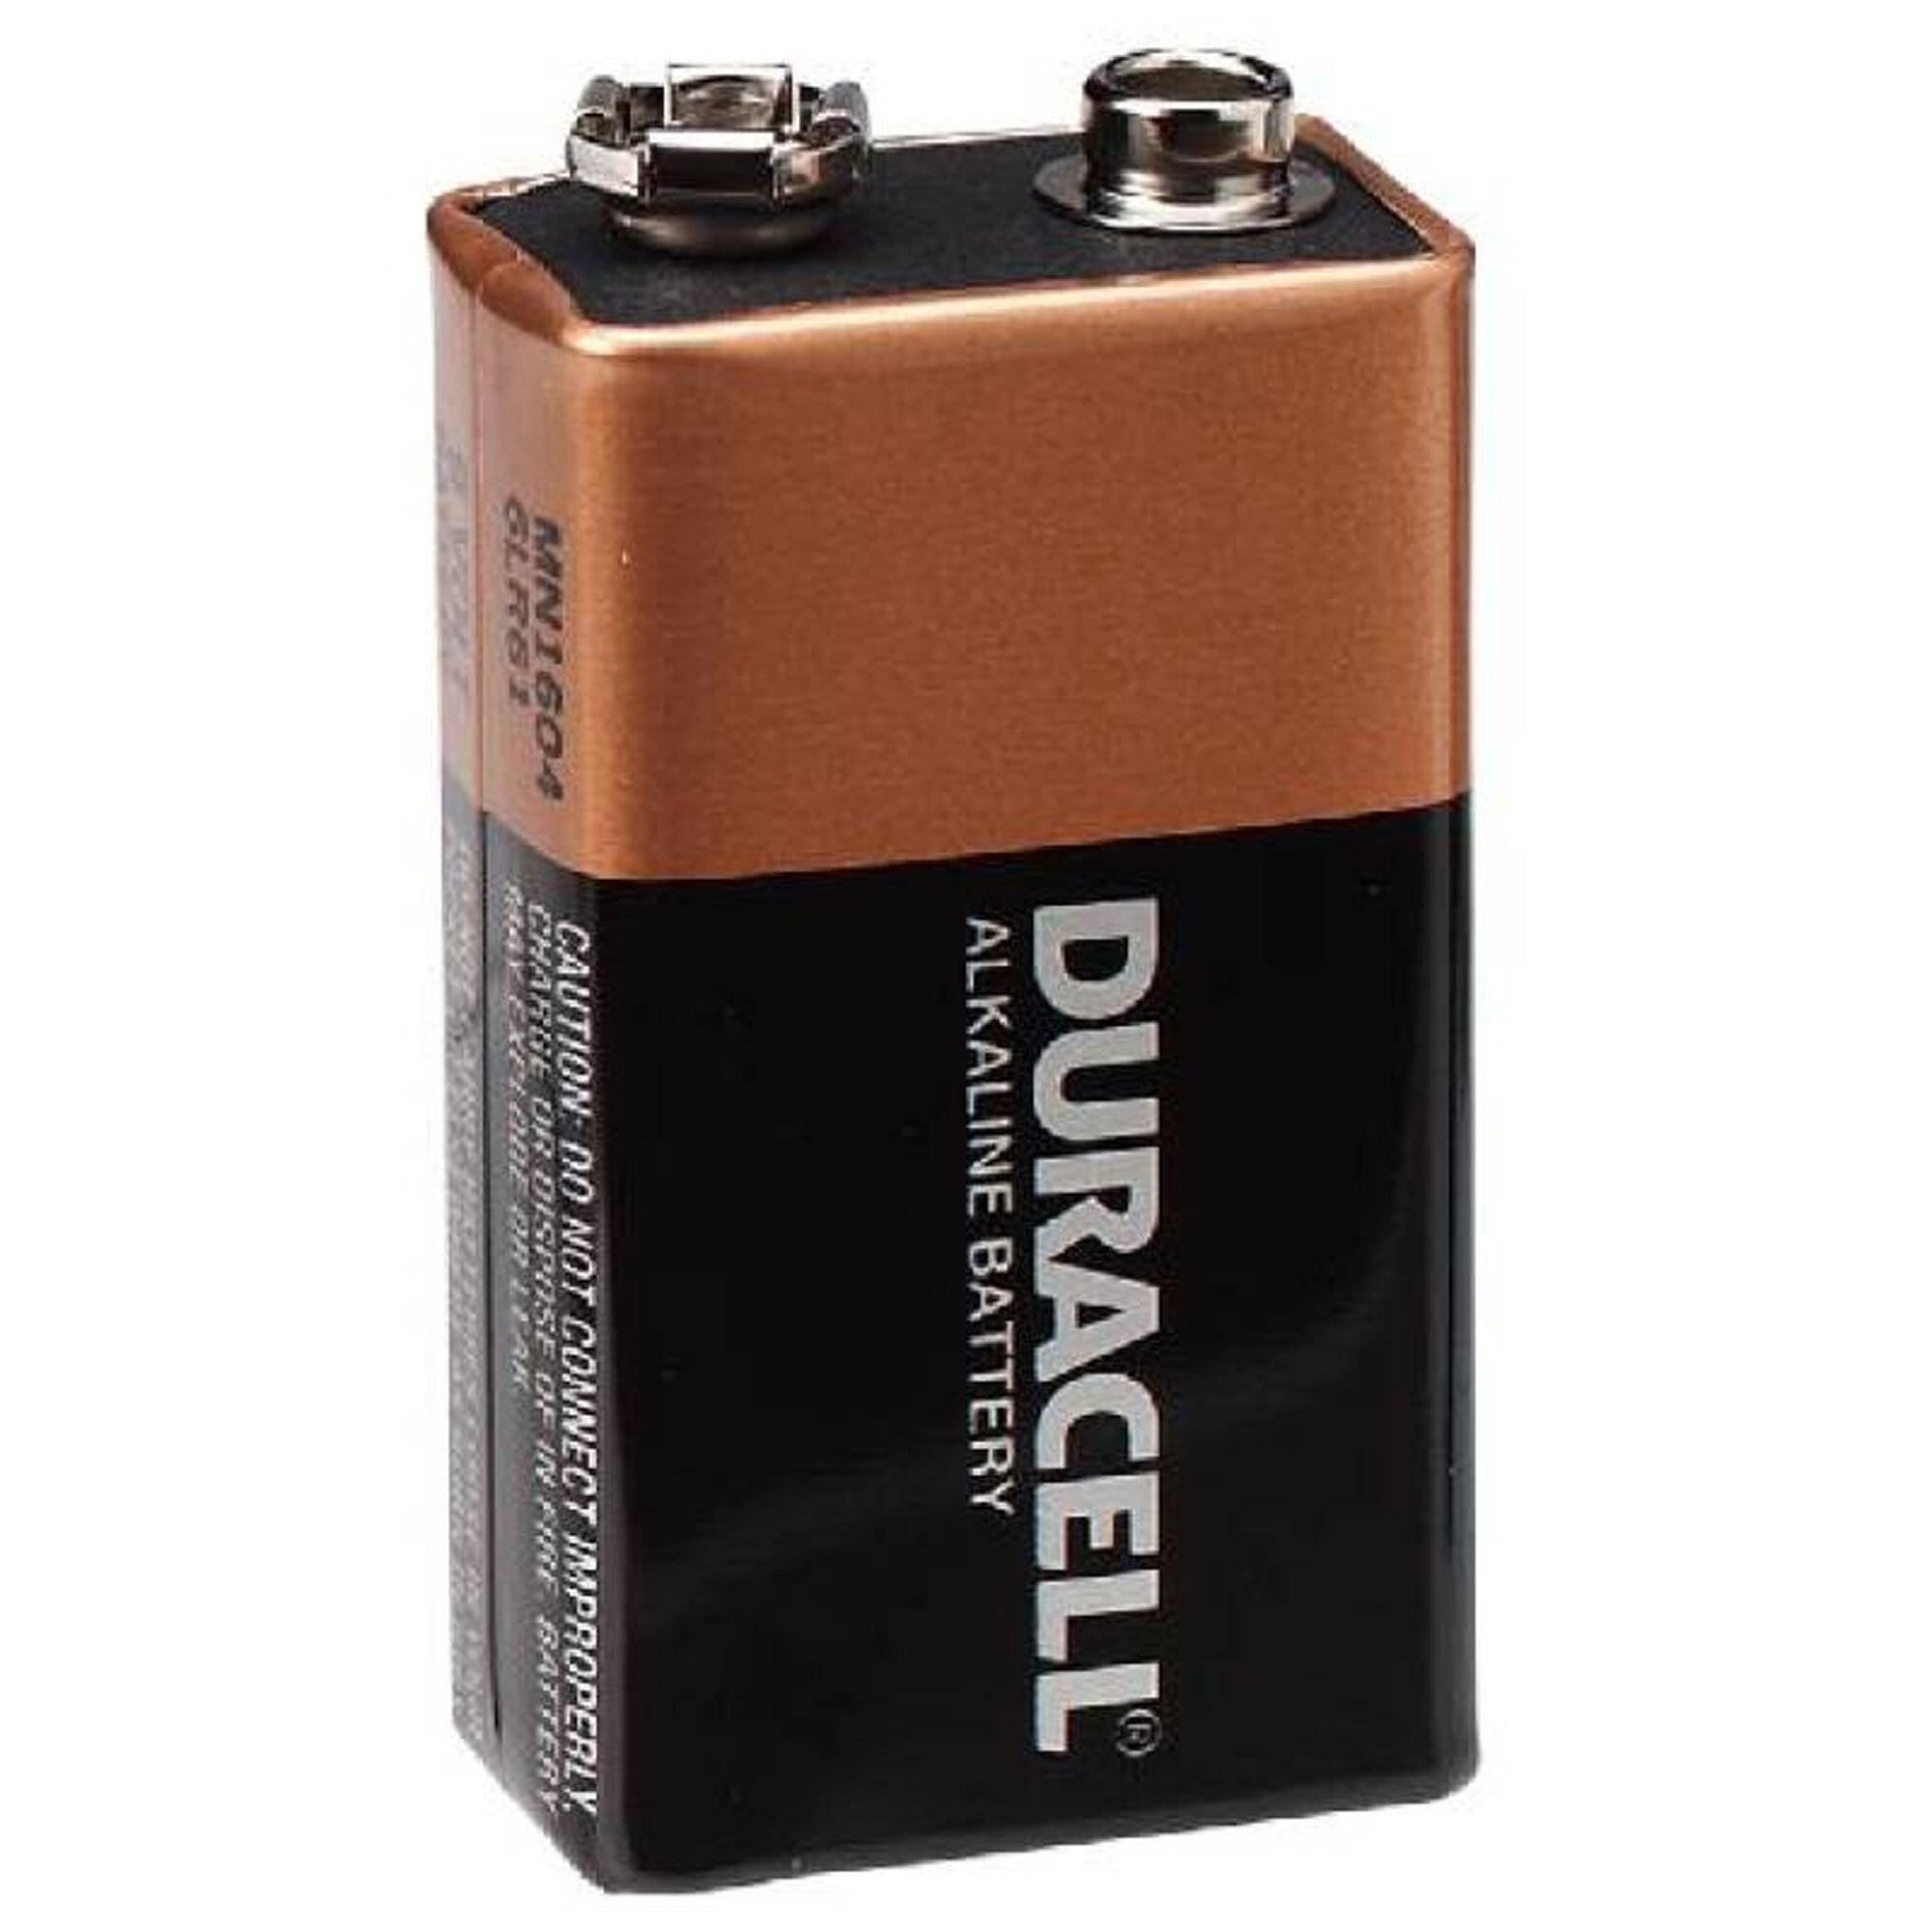 vintage 9 volt battery for sale classifieds. Black Bedroom Furniture Sets. Home Design Ideas